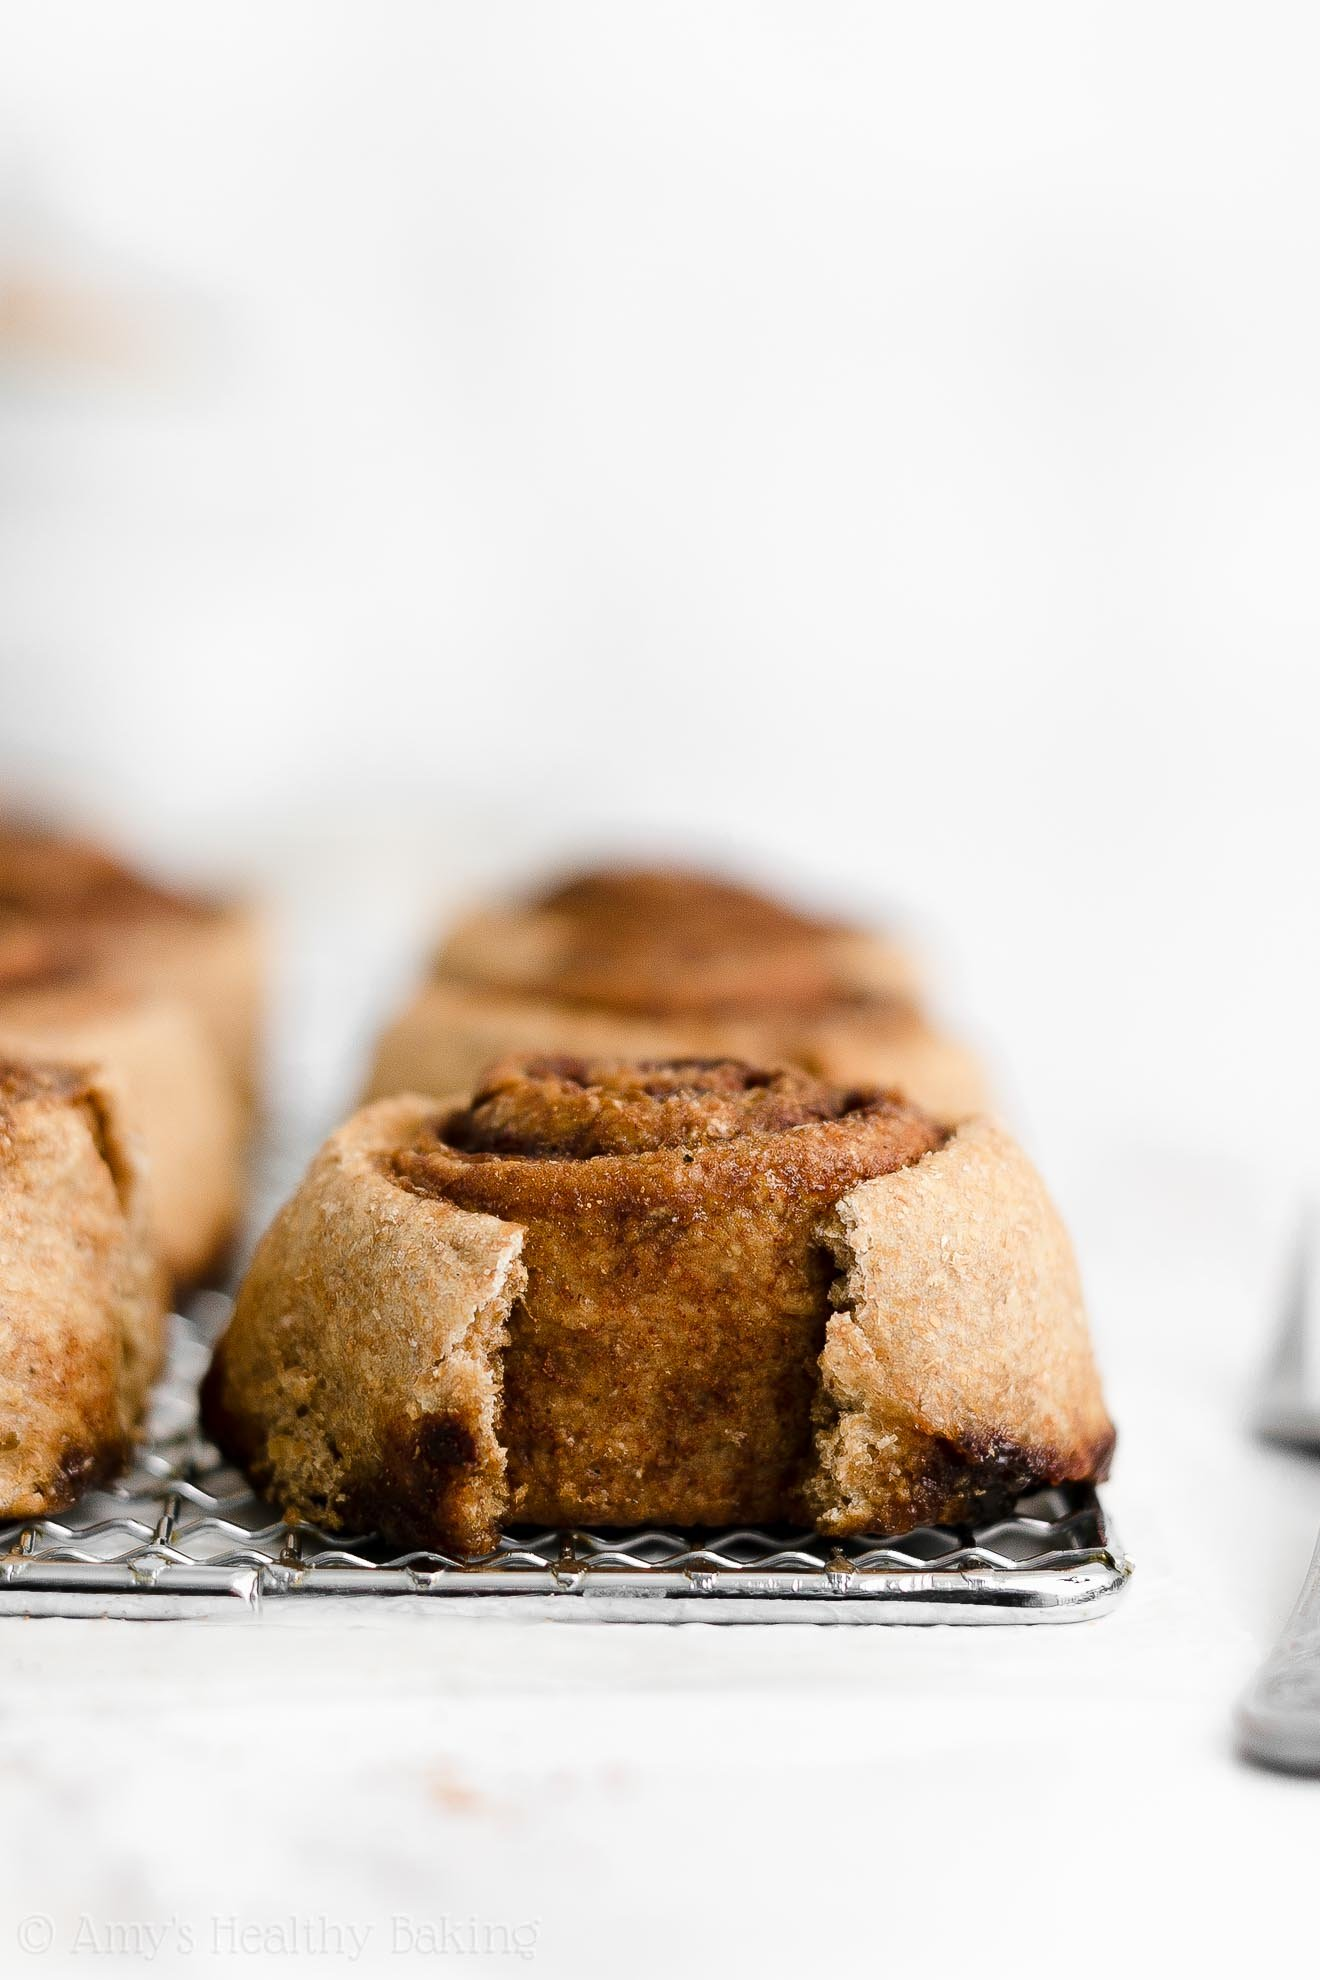 ULTIMATE Best Ever Healthy Clean Eating Whole Wheat Fluffy Cinnamon Rolls